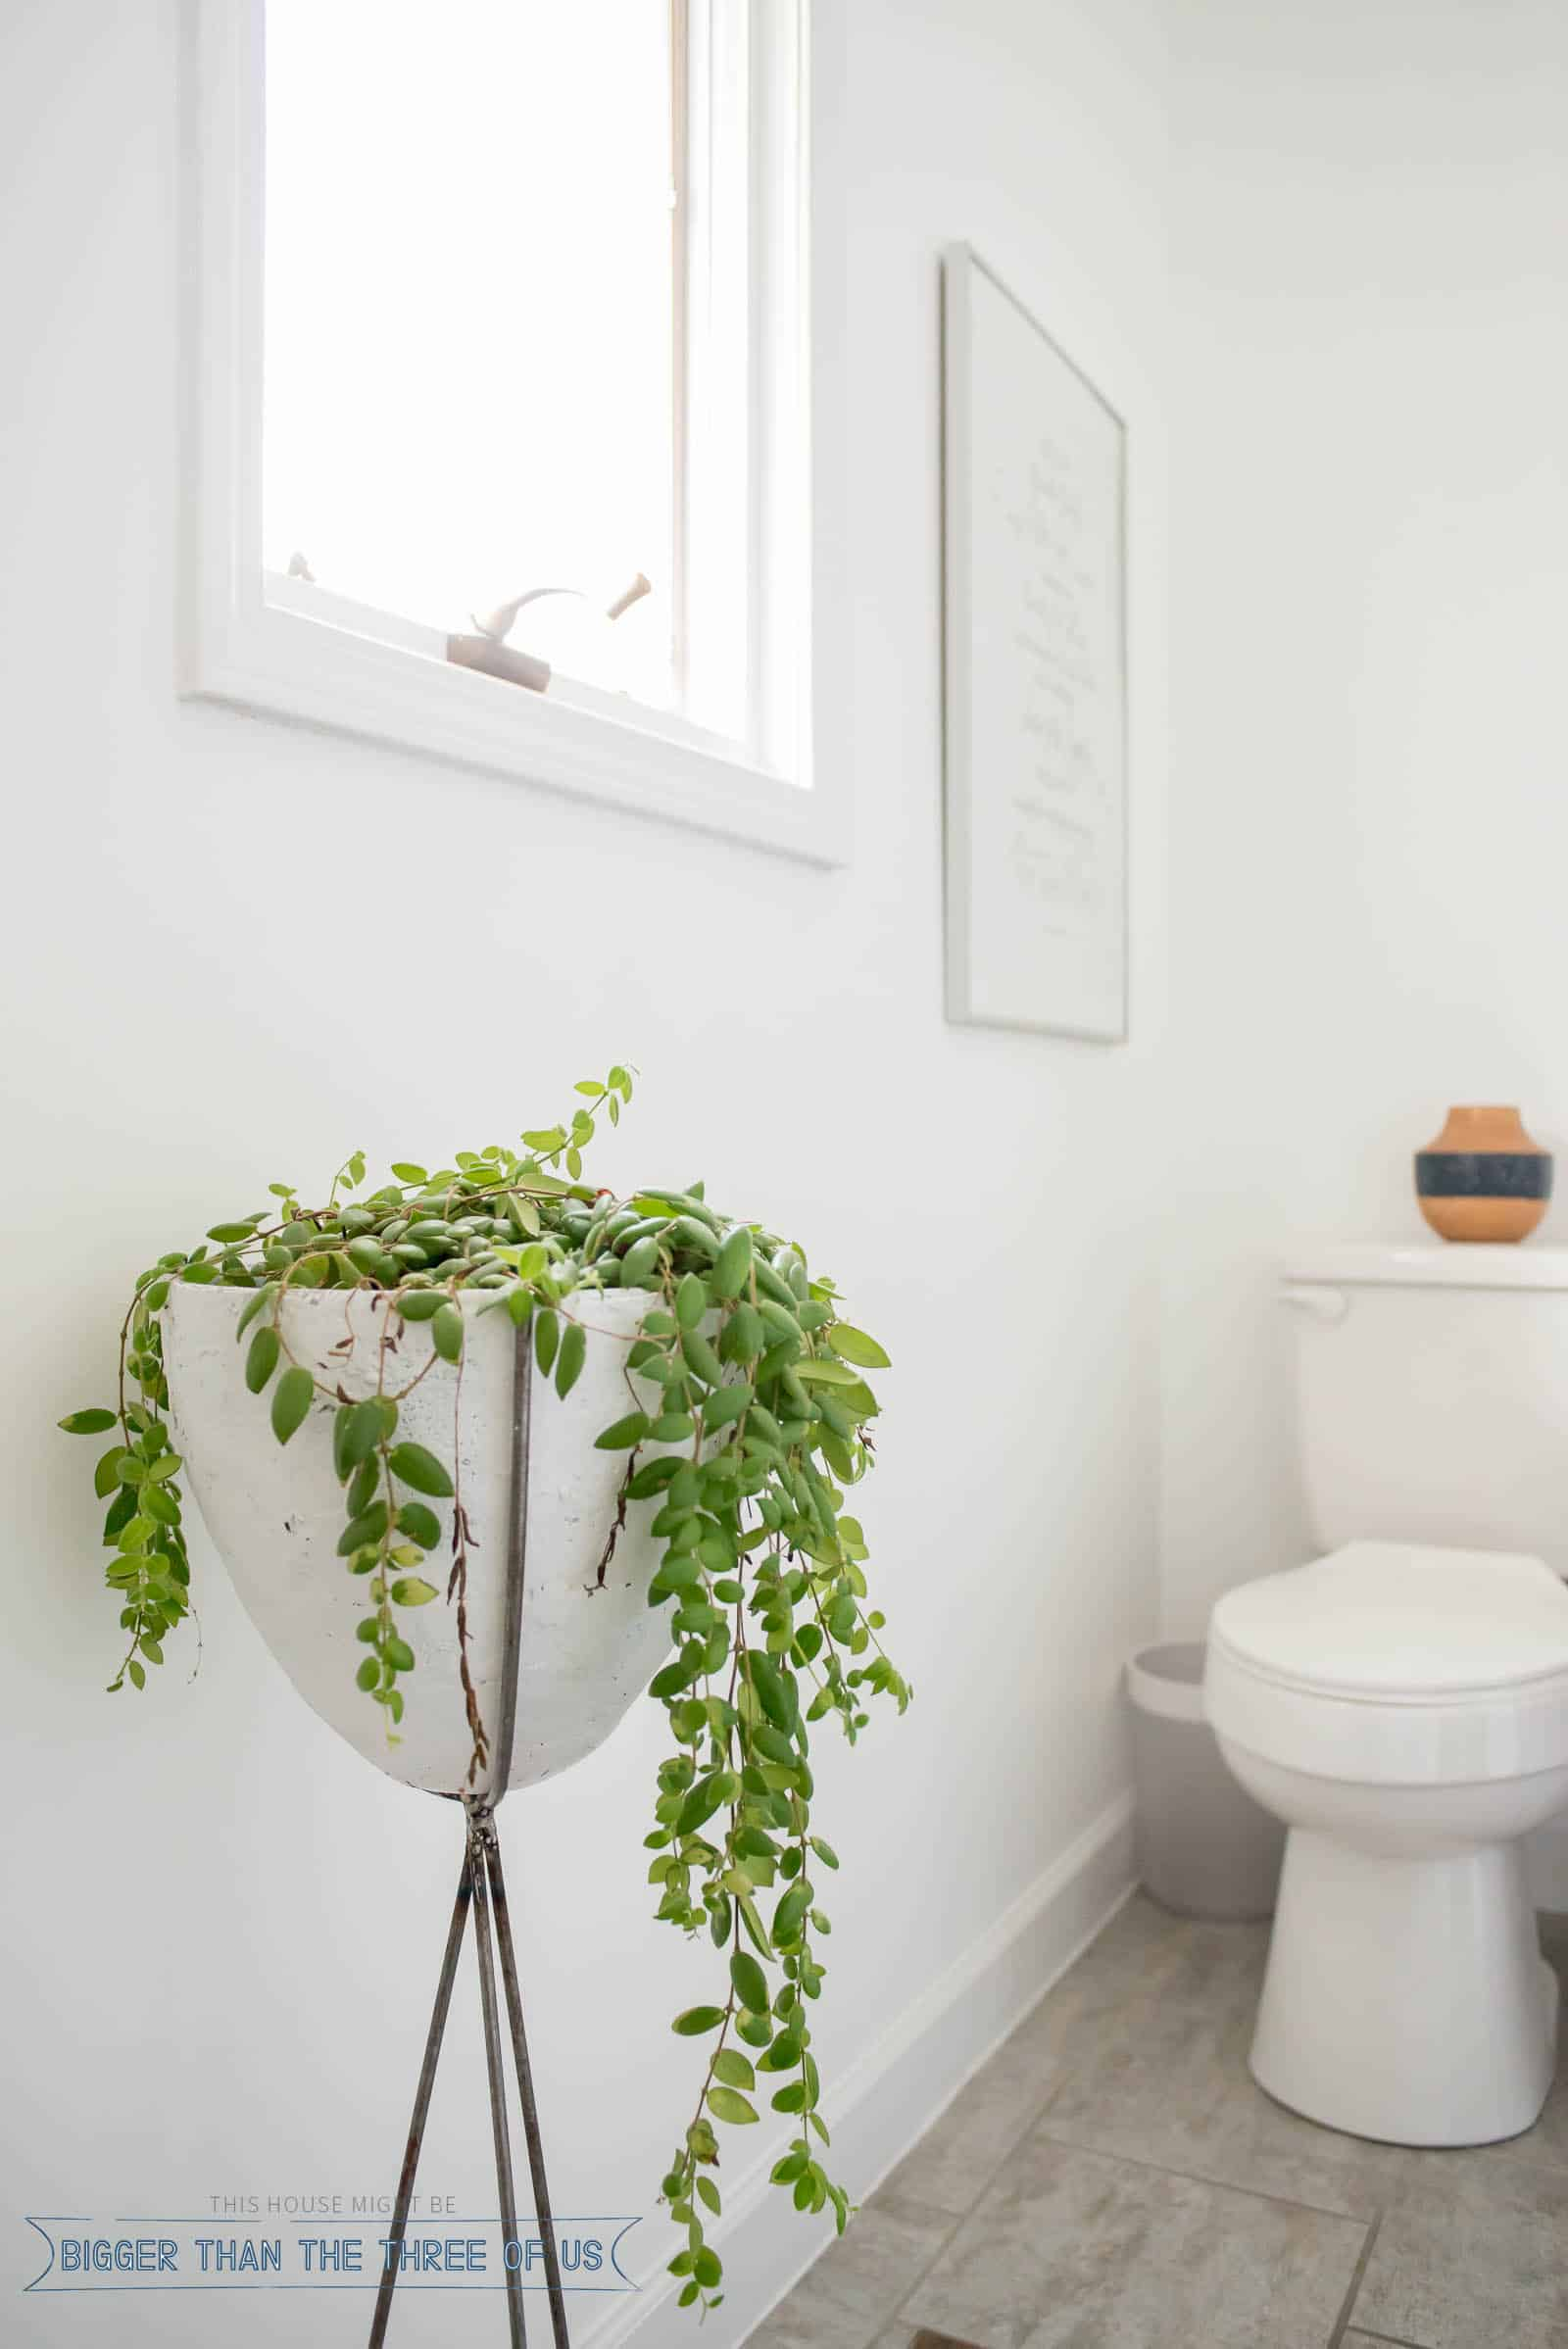 DIY Bullet Planter in bathroom